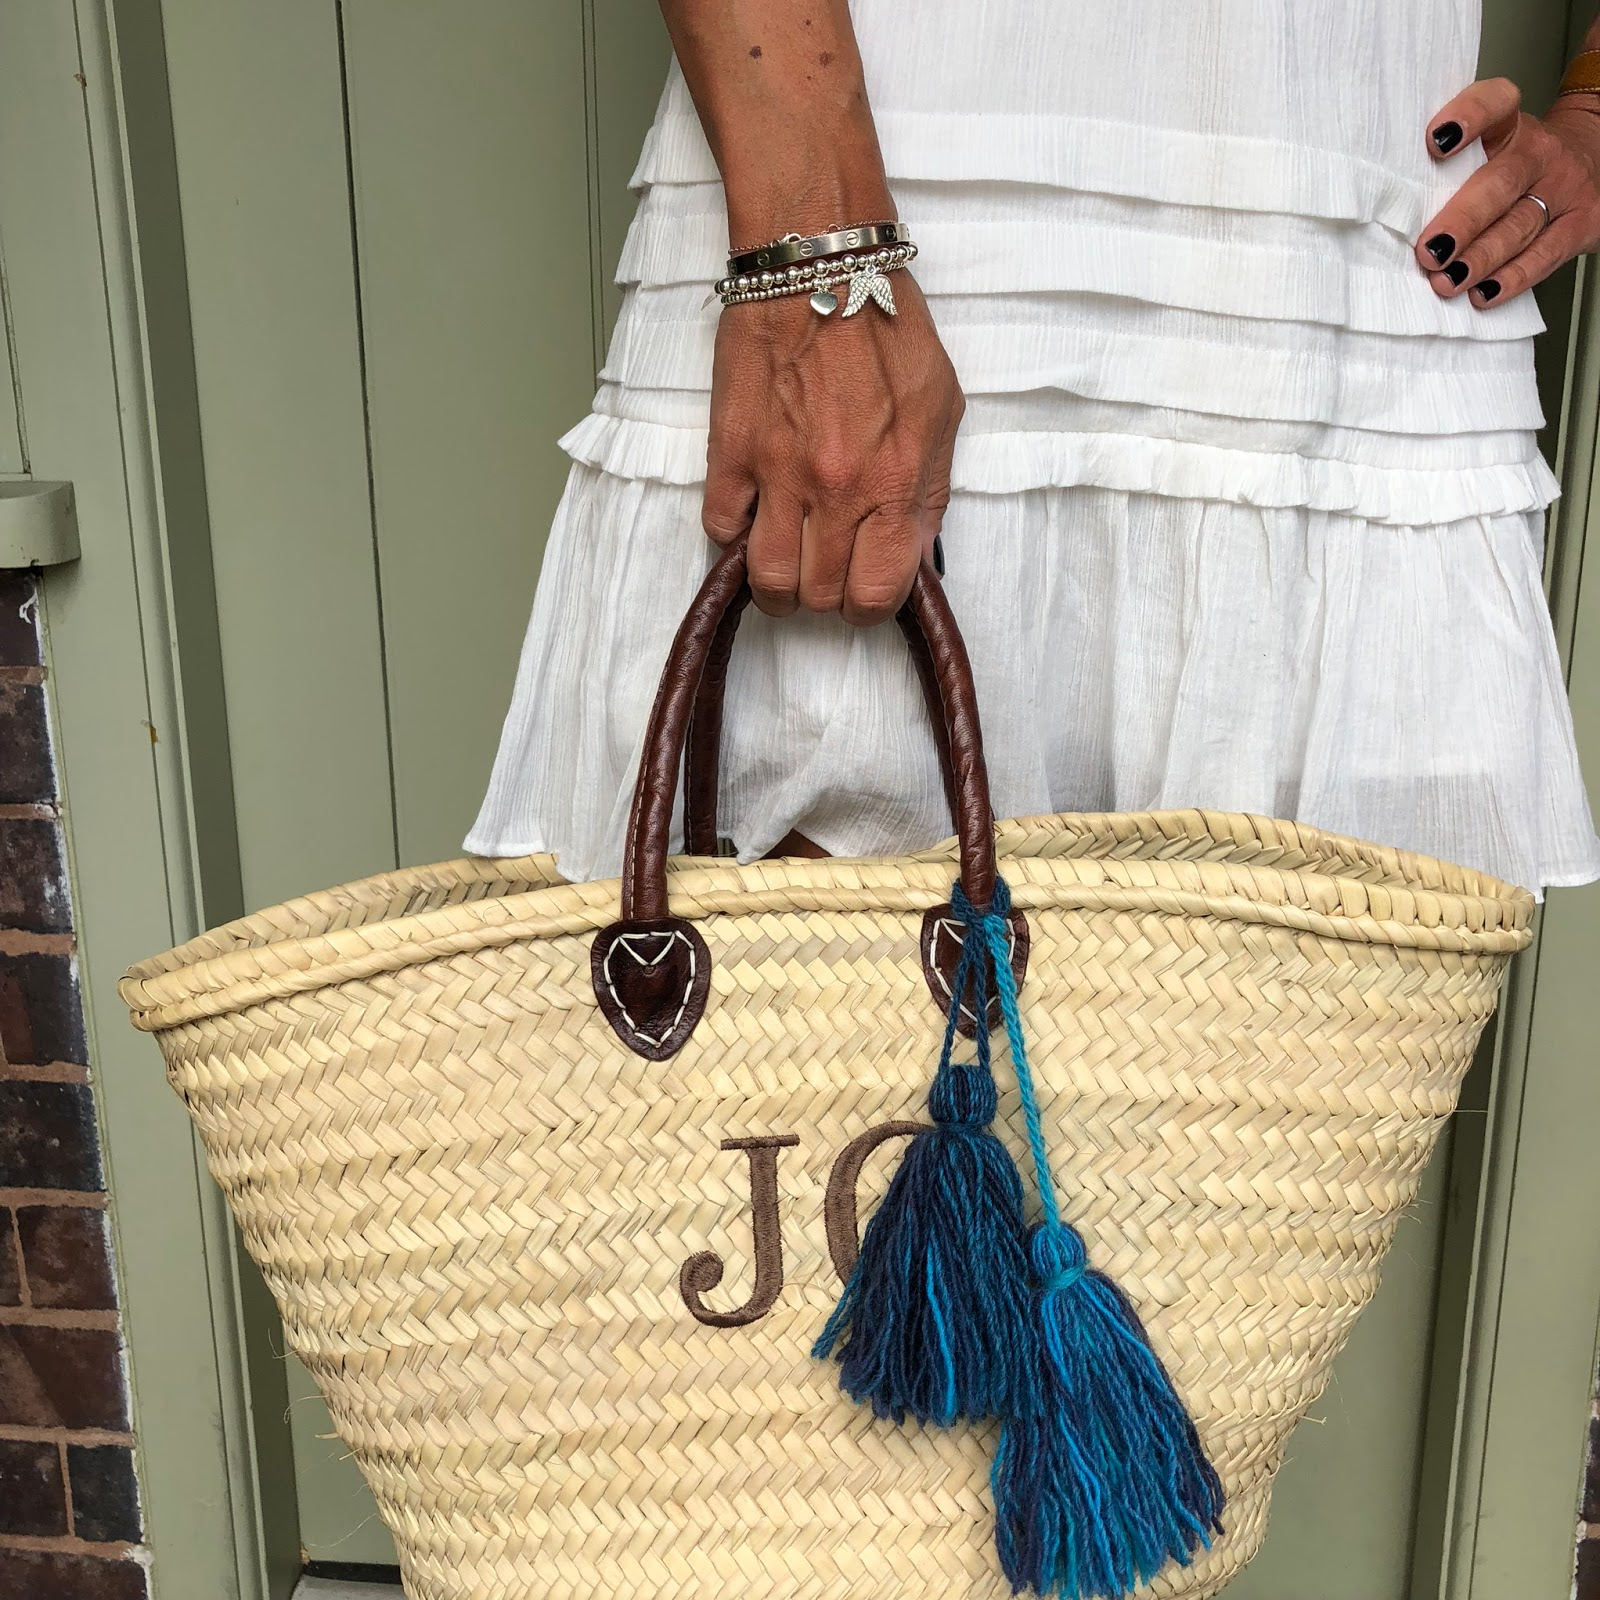 my midlife fashion chlobo solar plexus chakra necklace, hush portobello dress, initially london covent garden medium basket shopper, chlobo mini small ball double angel wing bracelet, chlobo cute charm puffed heart bracelet